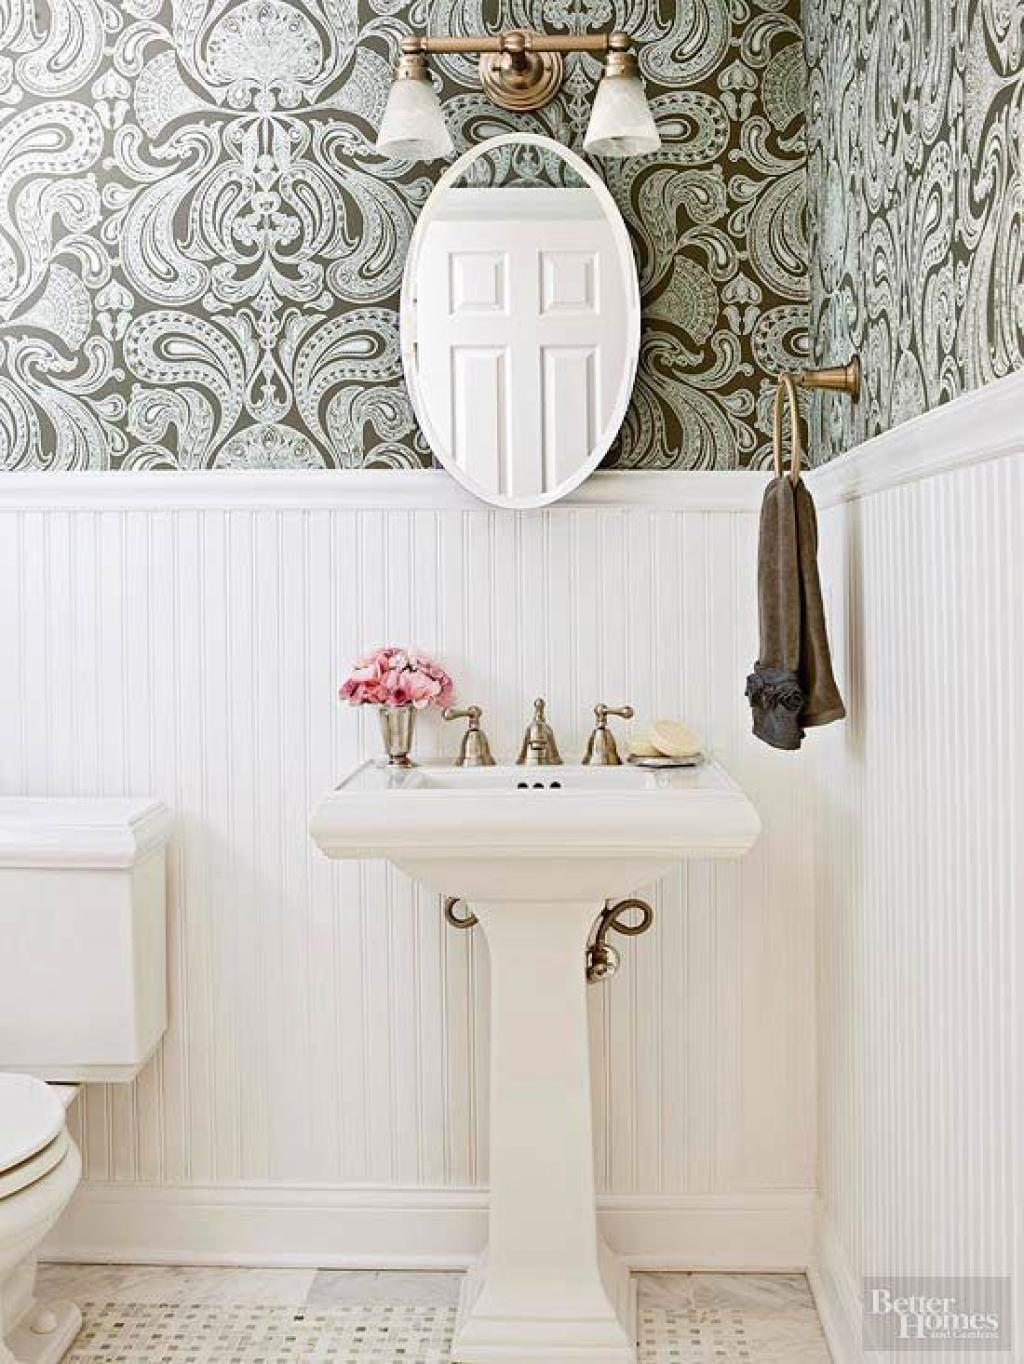 Floral royal bathroom wallpaper ideas on small white for Floral bathroom wallpaper